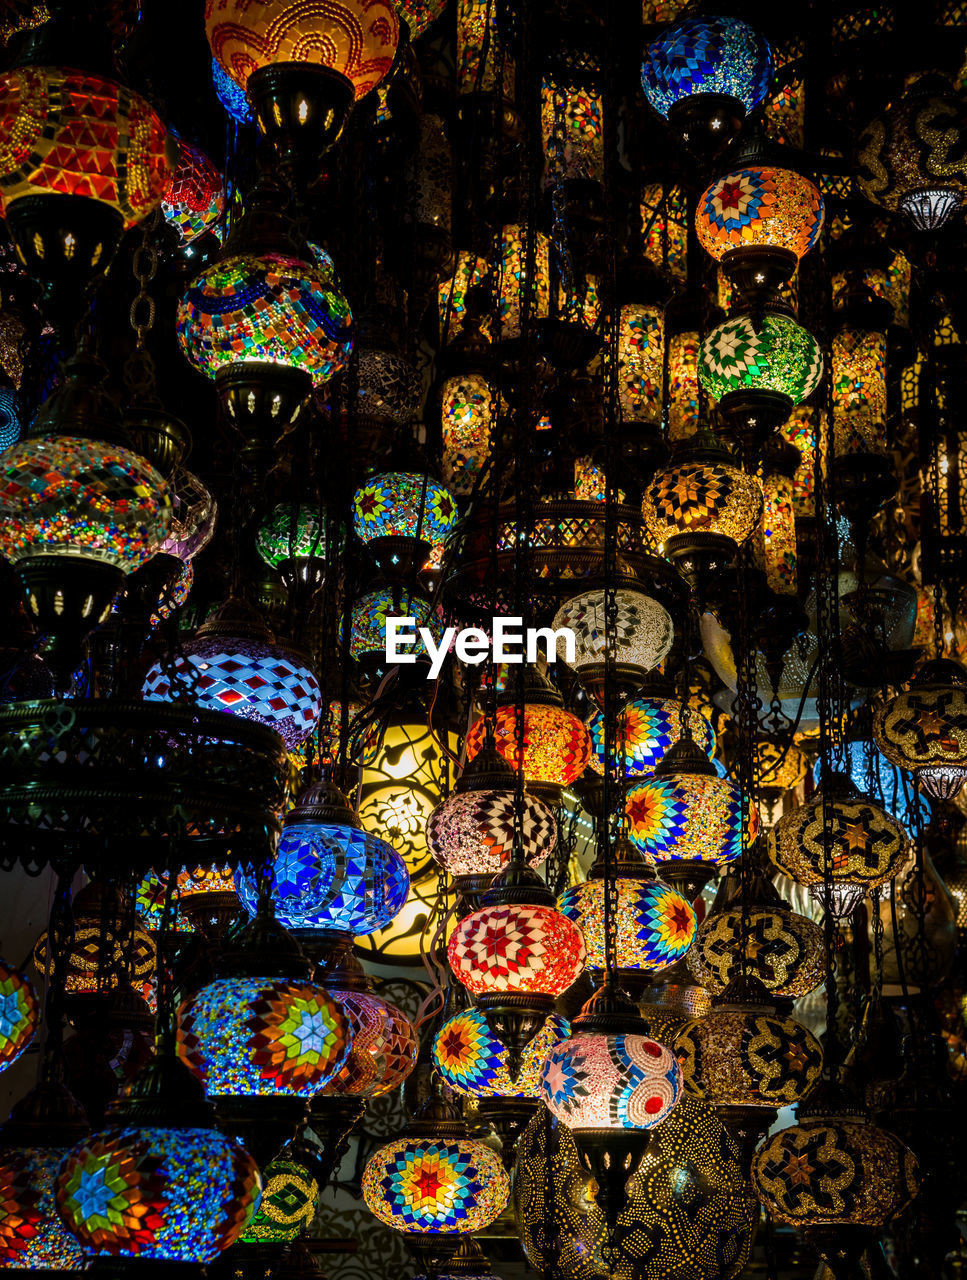 choice, variation, large group of objects, multi colored, indoors, for sale, abundance, no people, art and craft, retail, full frame, collection, backgrounds, pattern, market, hanging, arrangement, decoration, craft, lighting equipment, retail display, floral pattern, electric lamp, ornate